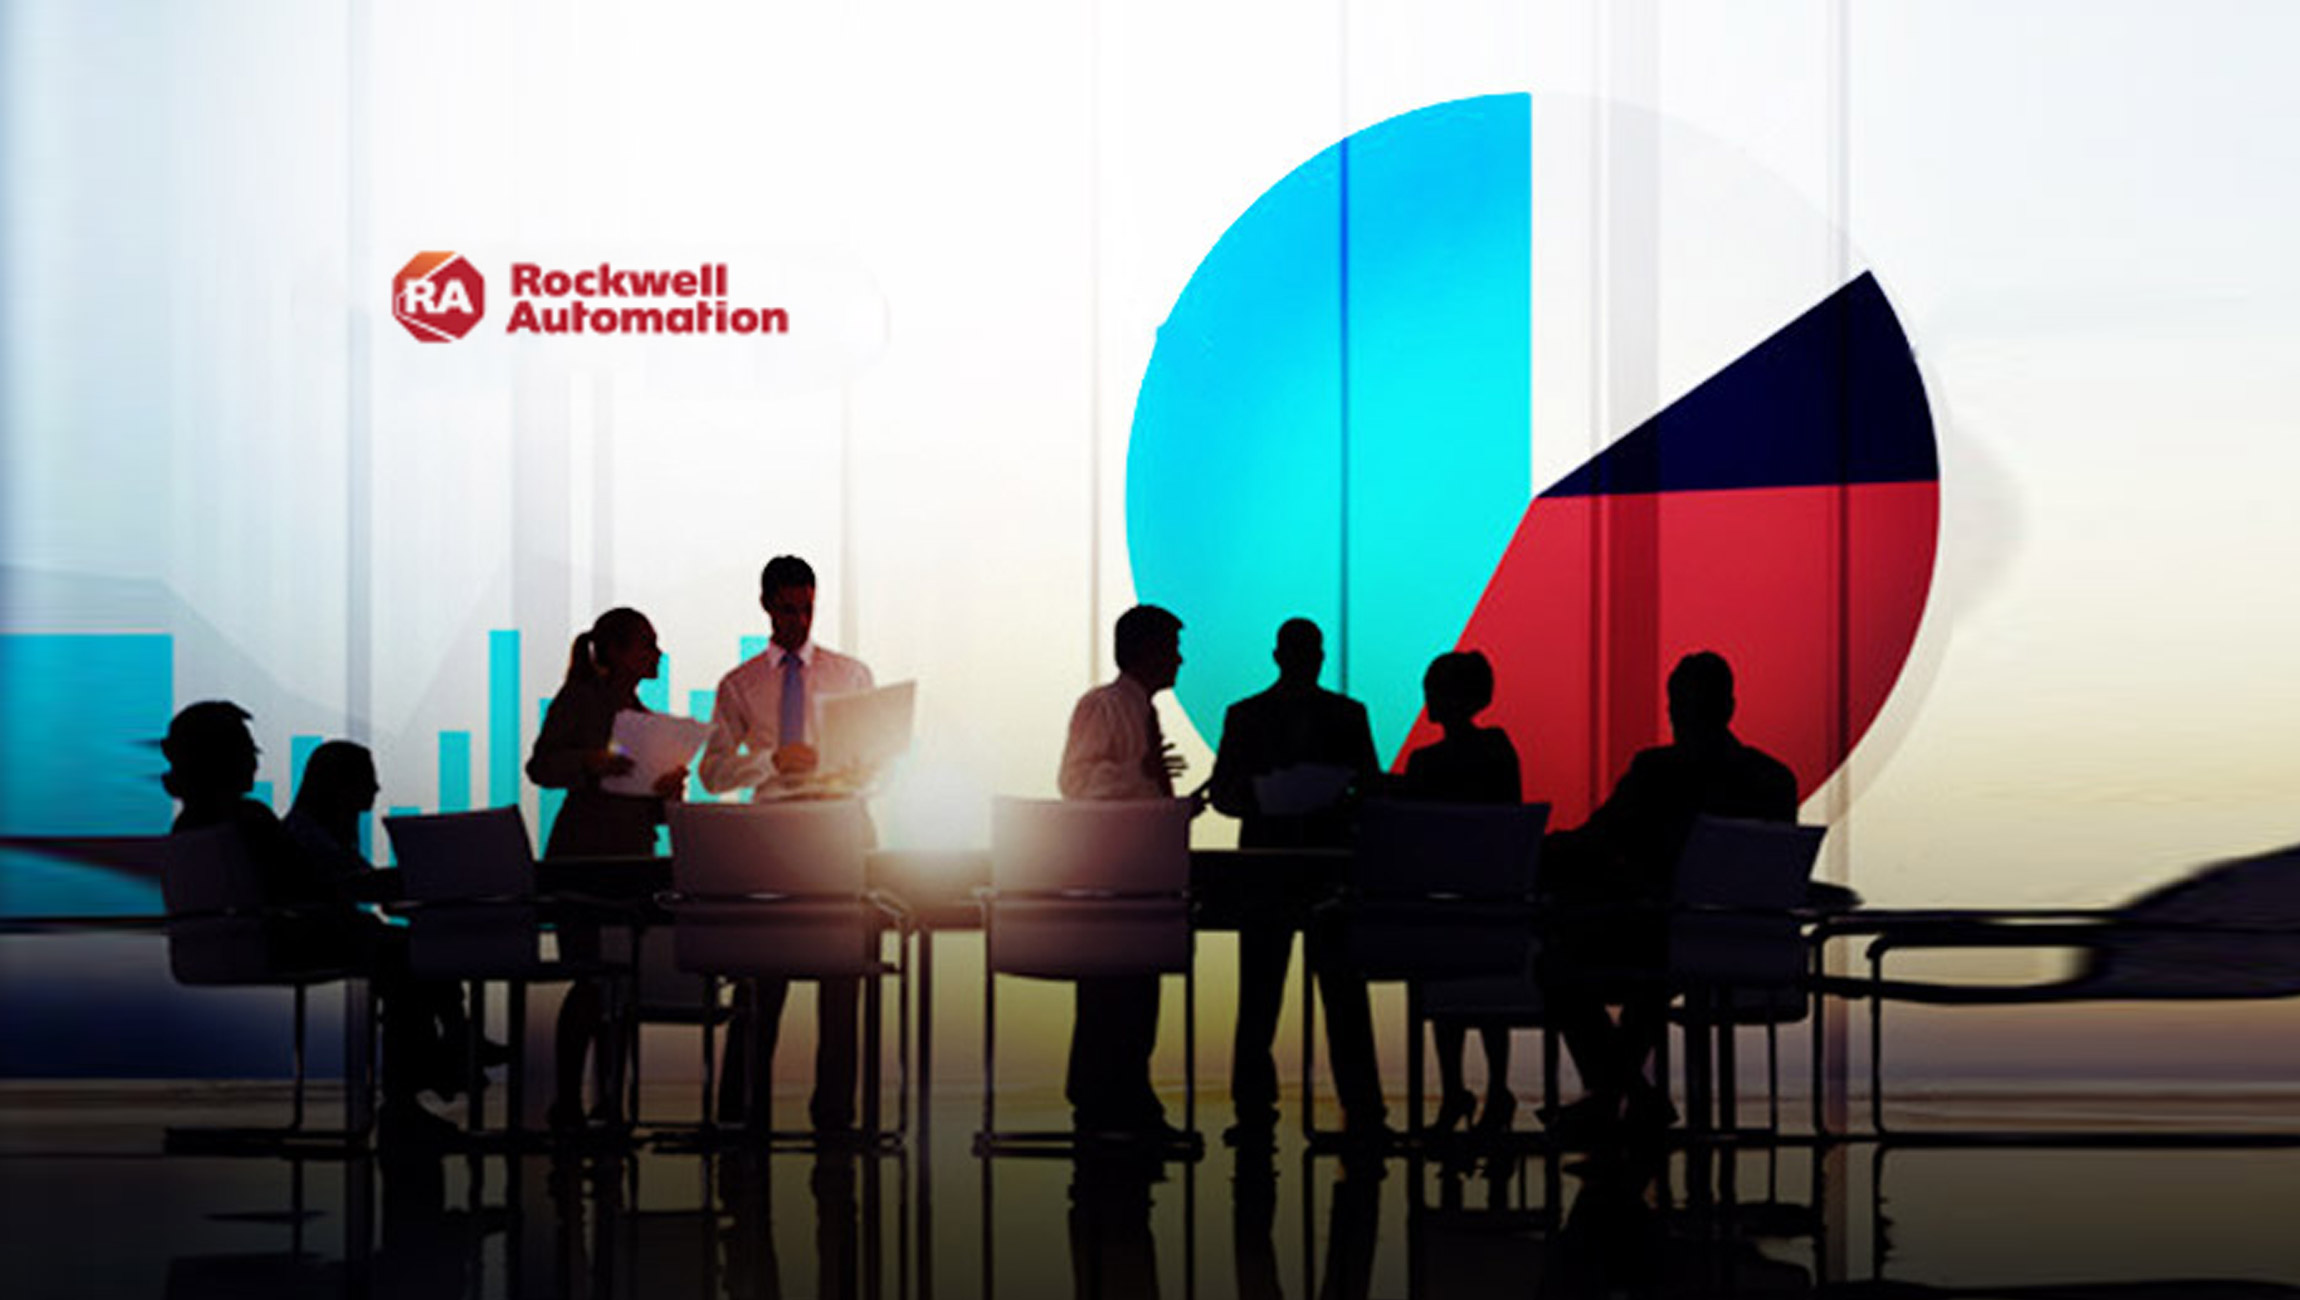 Rockwell Automation Announces Key Additions to Leadership Team